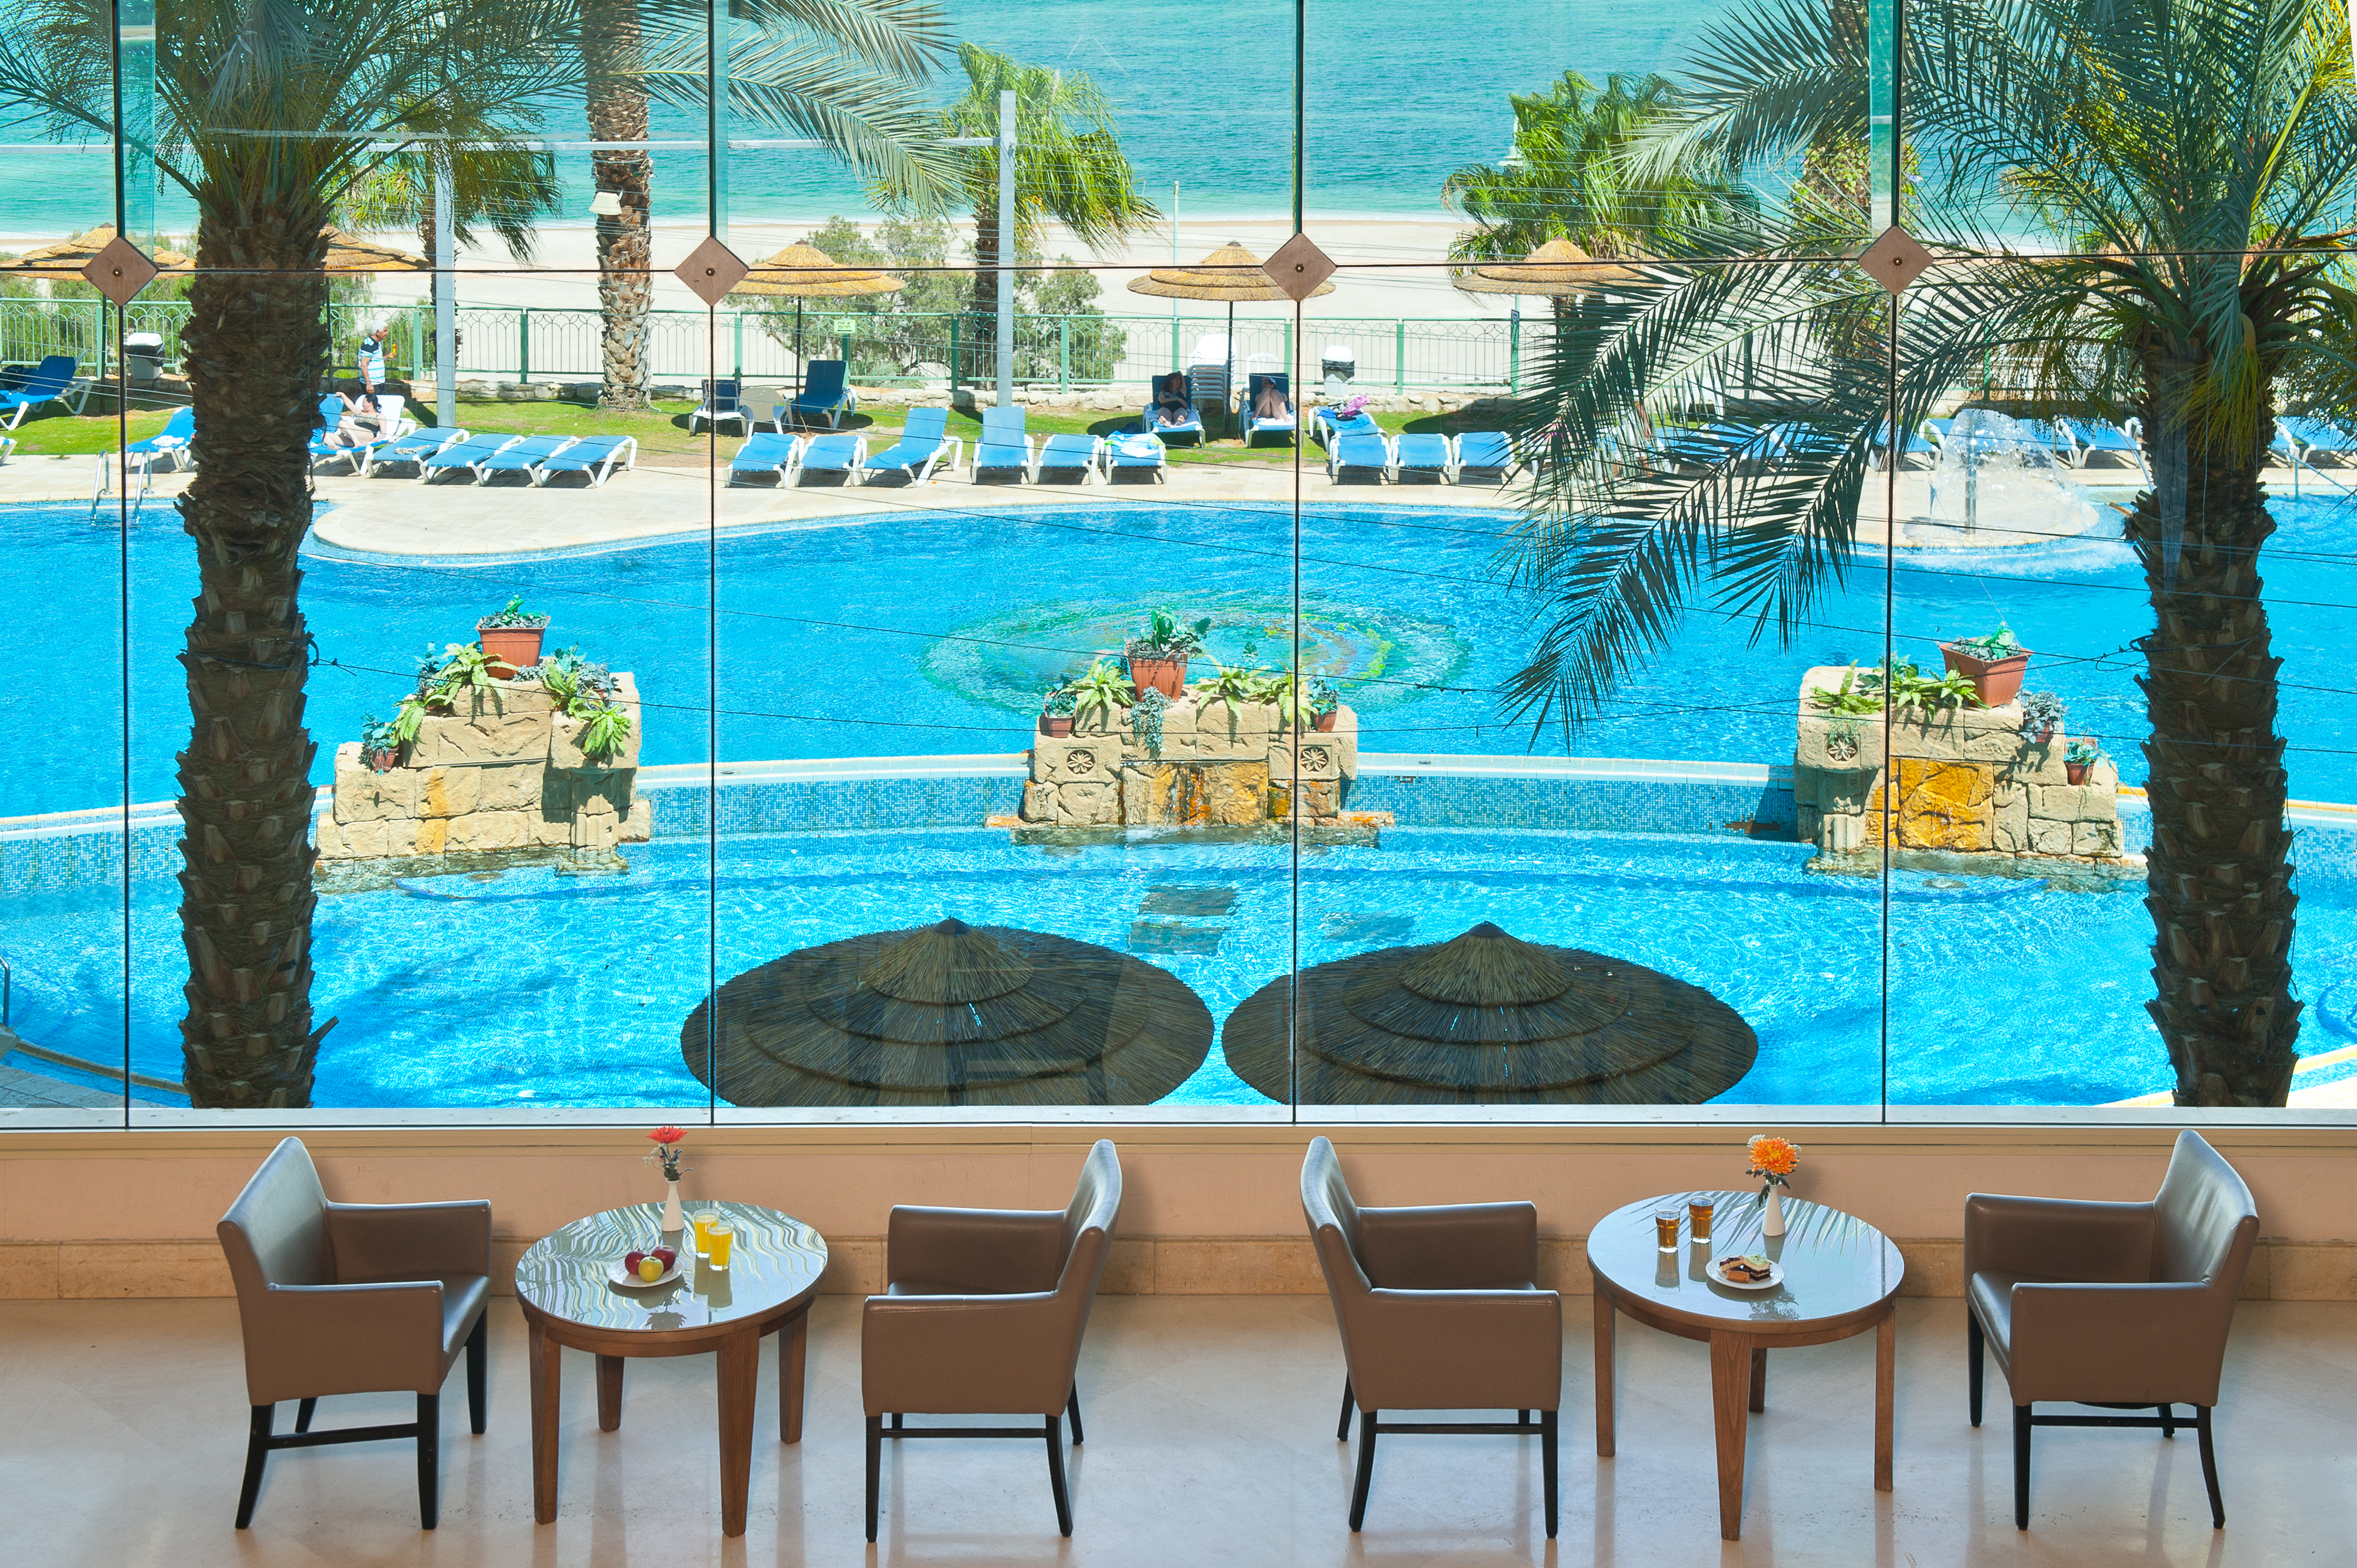 View of the pool and beach from the lobby